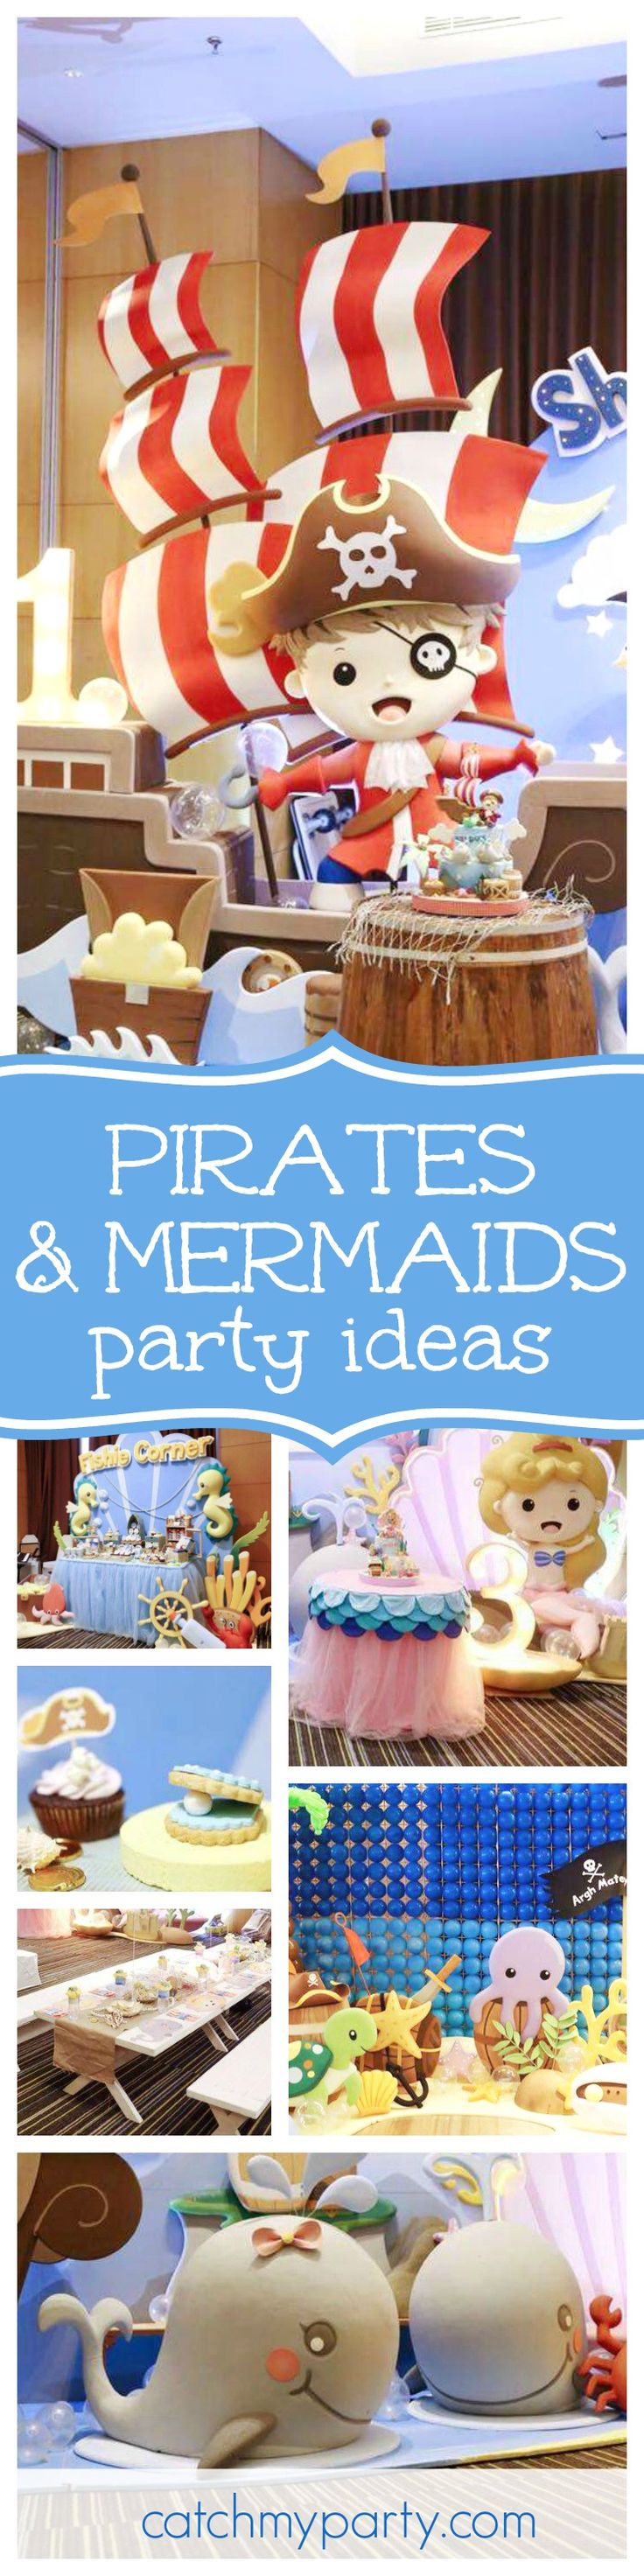 Take a look at this fantastic Pirates & Mermaids 1st Birthday party. The birthday cake is out of this world!! See more party ideas and share yours at CatchMyParty.com